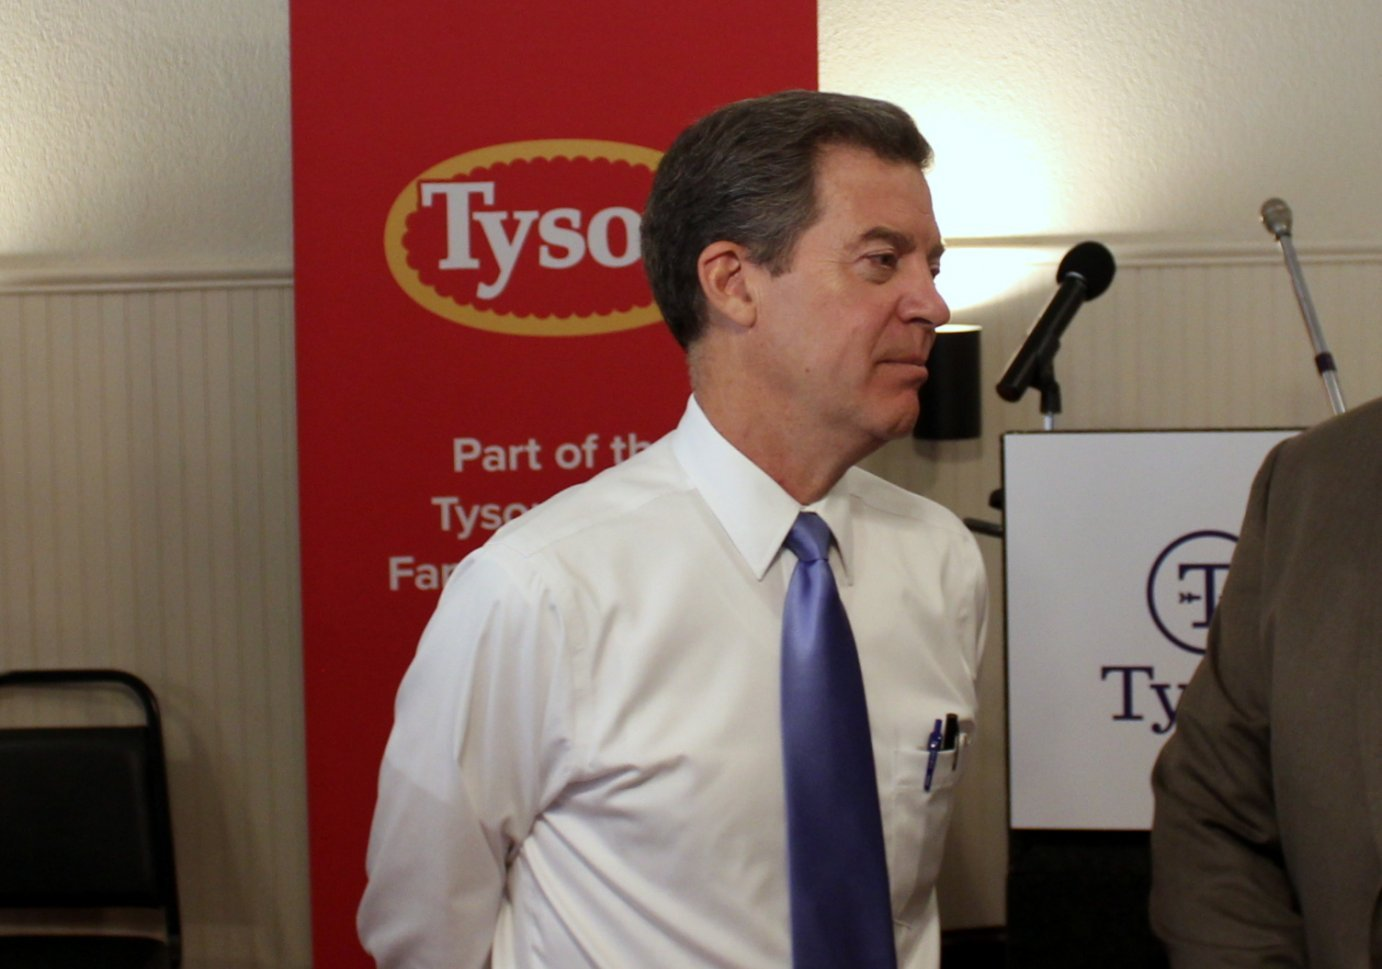 Governor Sam Brownback at the announcement of the original Tyson plant proposal. Members of Brownback's cabinet are now trying to find a new home for the plant in Kansas. (Photo by Stephen Koranda)